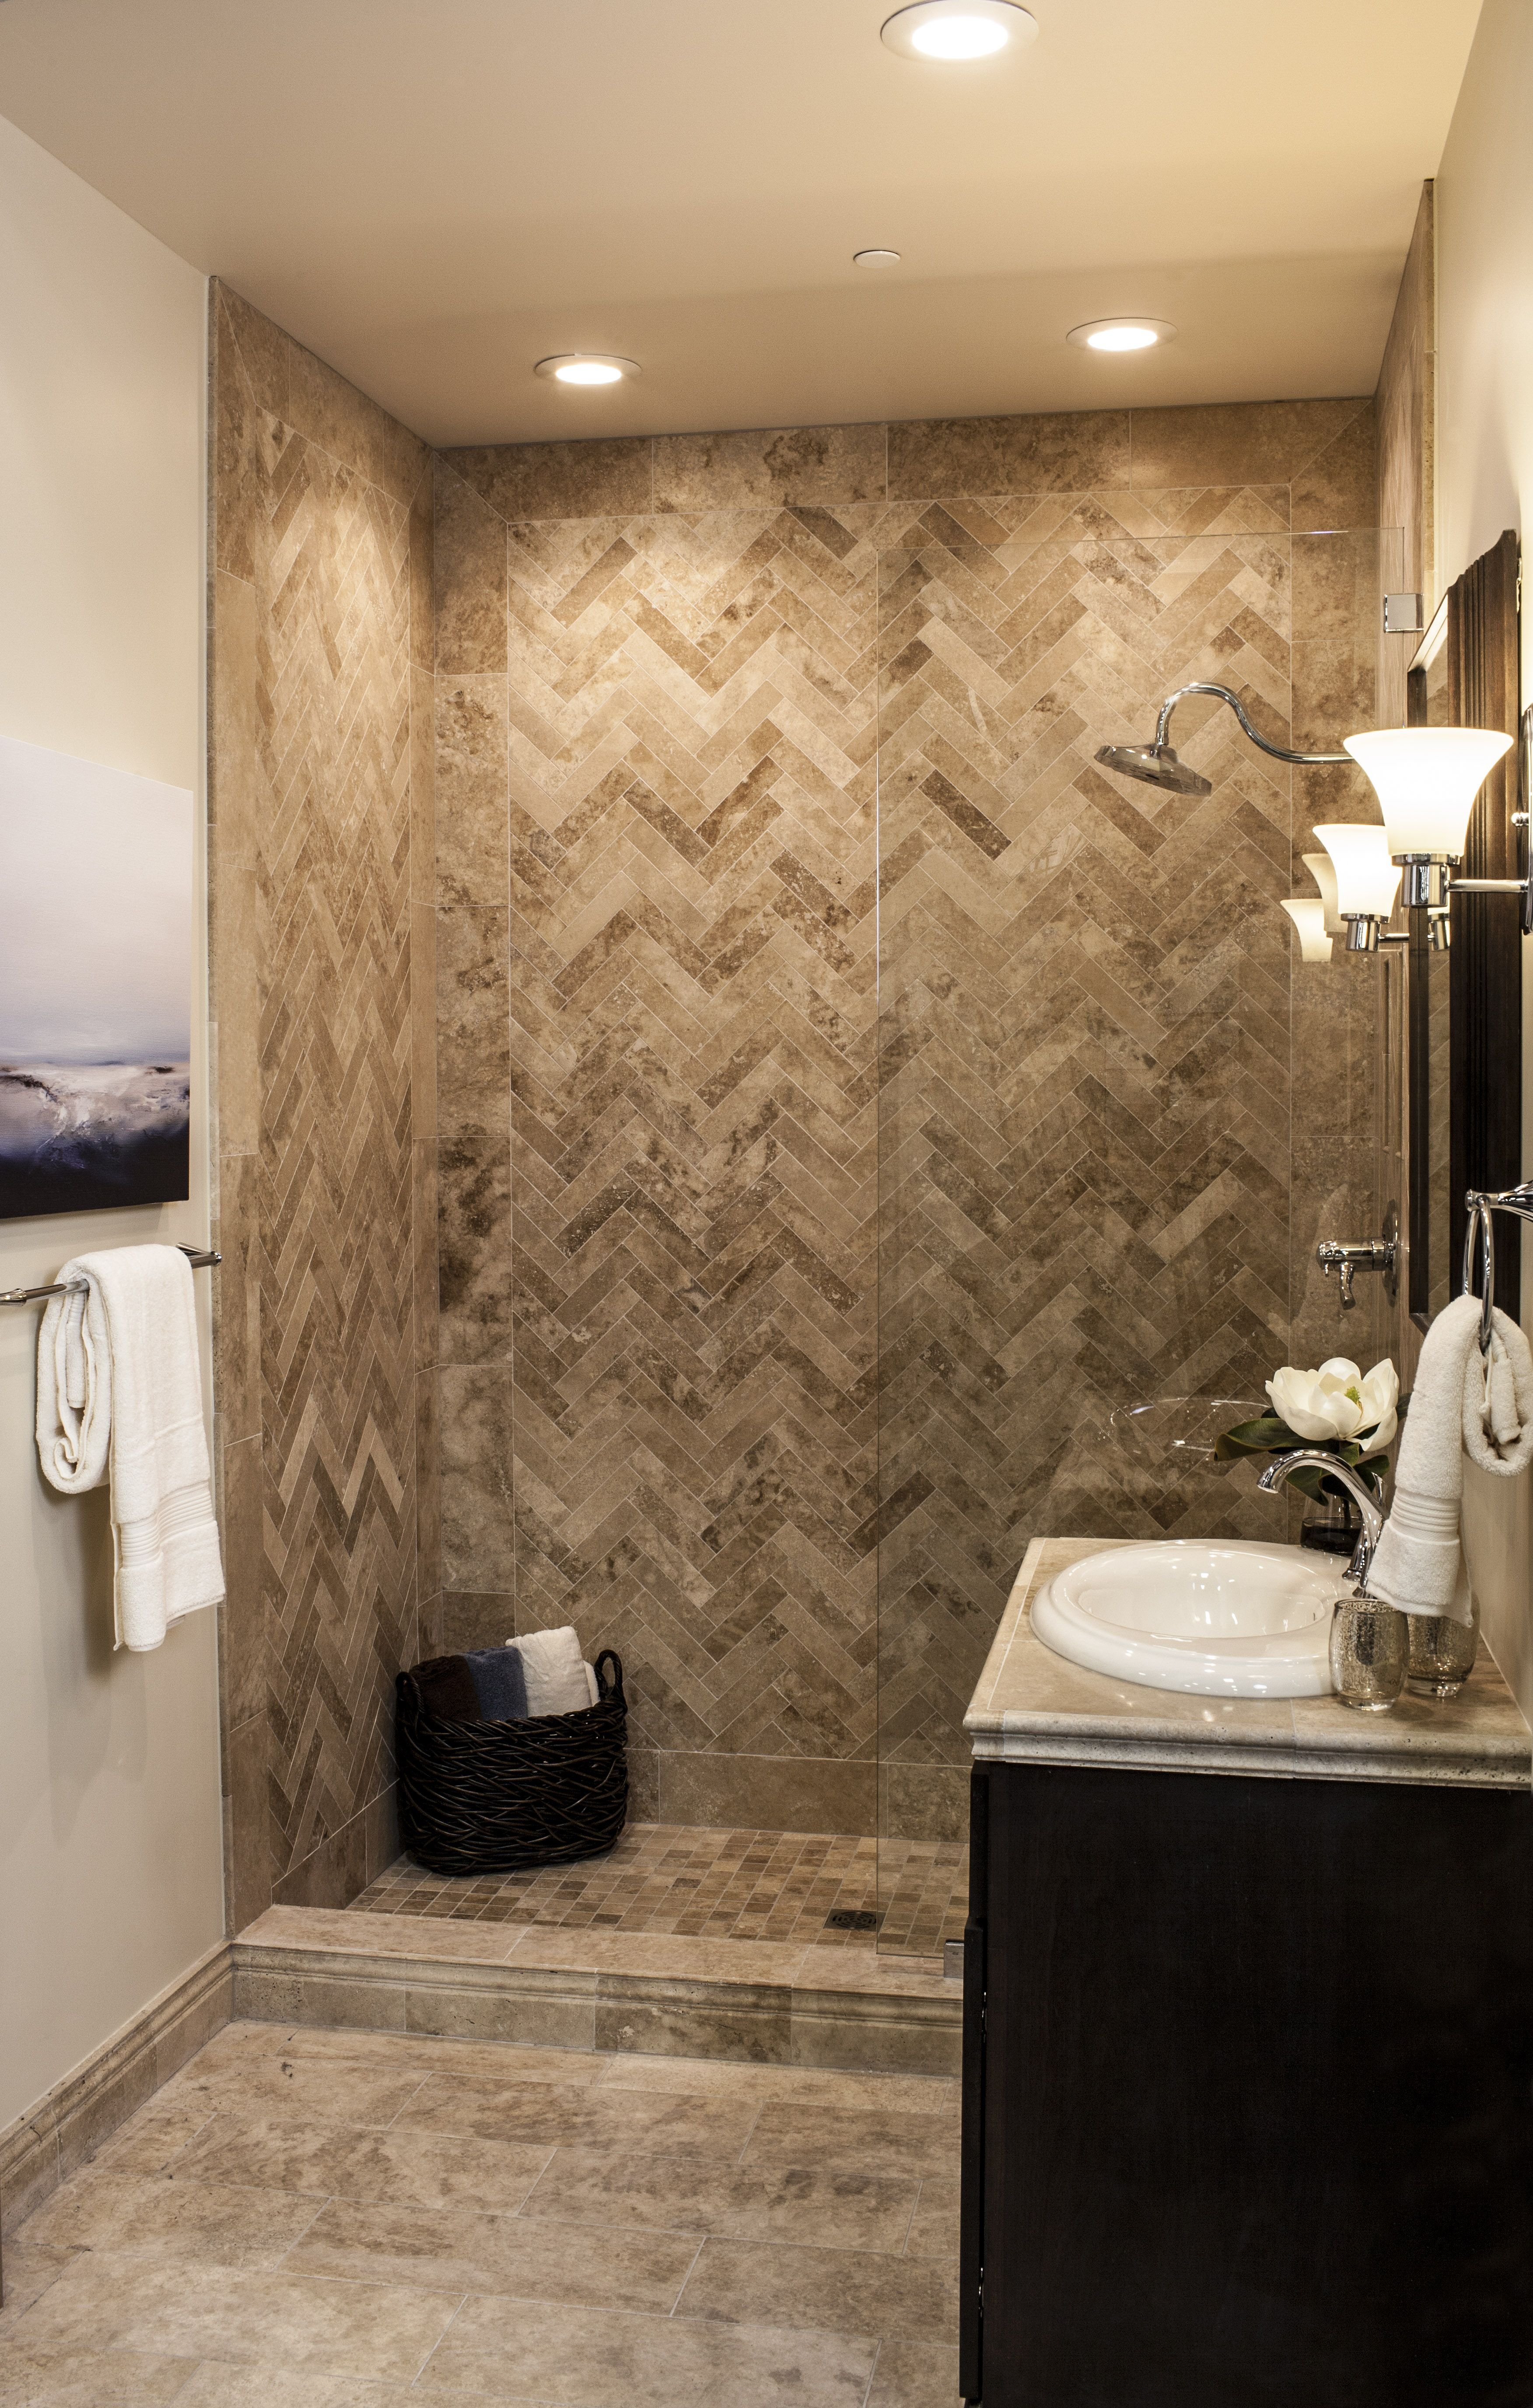 The Ultimate Travertine Tile Shower